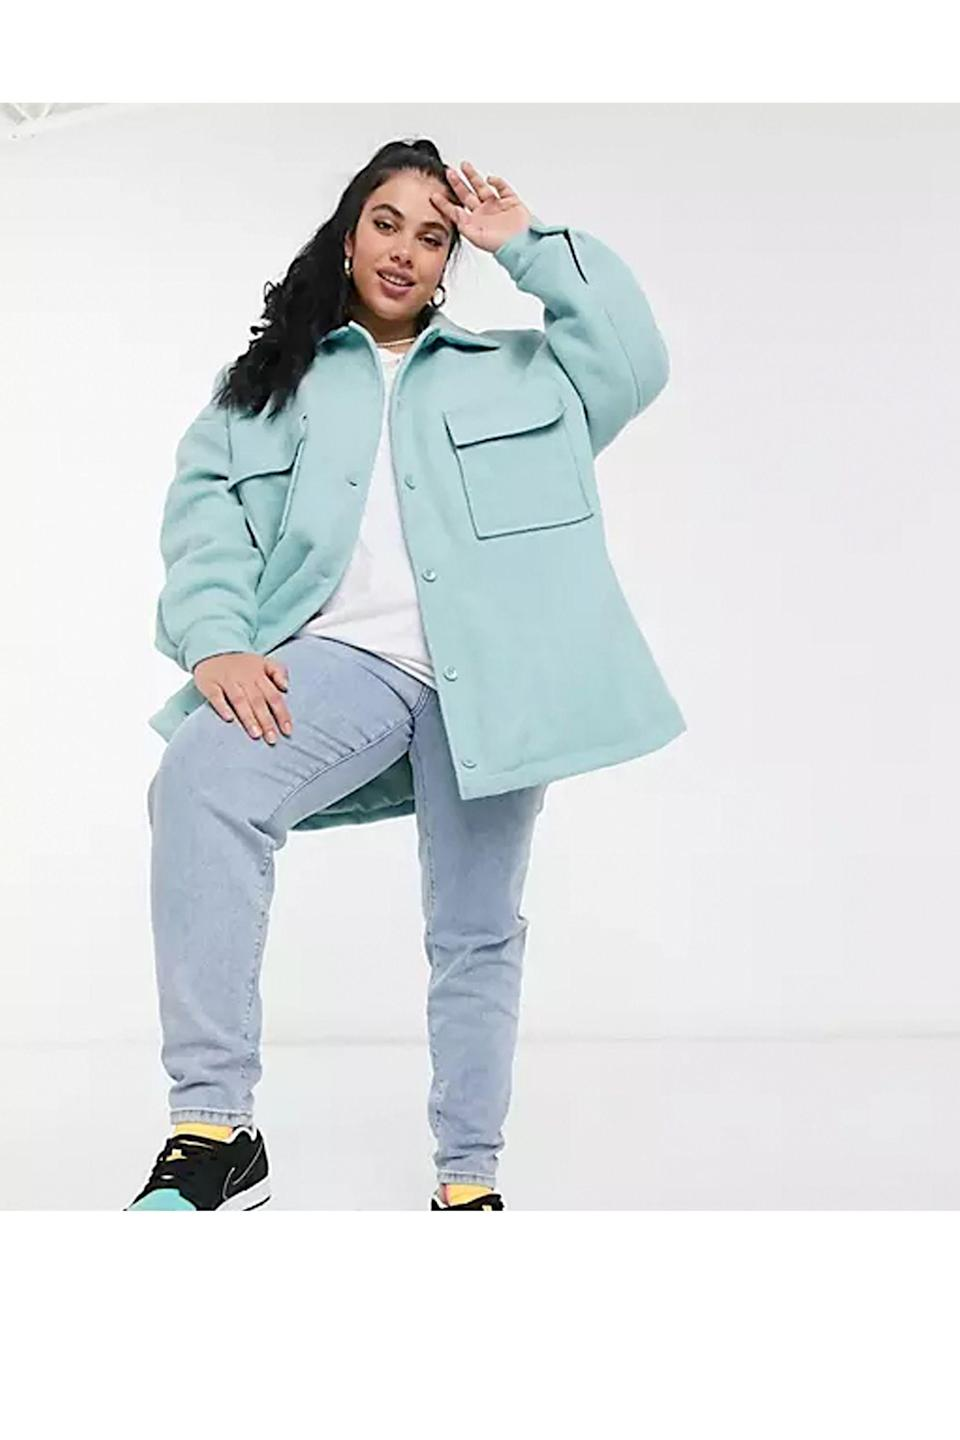 """<p><strong>Collusion</strong></p><p>us.asos.com</p><p><strong>$56.00</strong></p><p><a href=""""https://go.redirectingat.com?id=74968X1596630&url=https%3A%2F%2Fwww.asos.com%2Fus%2Fcollusion%2Fcollusion-plus-exclusive-color-faux-wool-shacket-in-blue%2Fprd%2F21865640&sref=https%3A%2F%2Fwww.cosmopolitan.com%2Fstyle-beauty%2Ffashion%2Fg36232237%2Fbest-shackets%2F"""" rel=""""nofollow noopener"""" target=""""_blank"""" data-ylk=""""slk:Shop Now"""" class=""""link rapid-noclick-resp"""">Shop Now</a></p><p>Bright and fresh, this sky blue hue is just too pretty to pass up. </p>"""